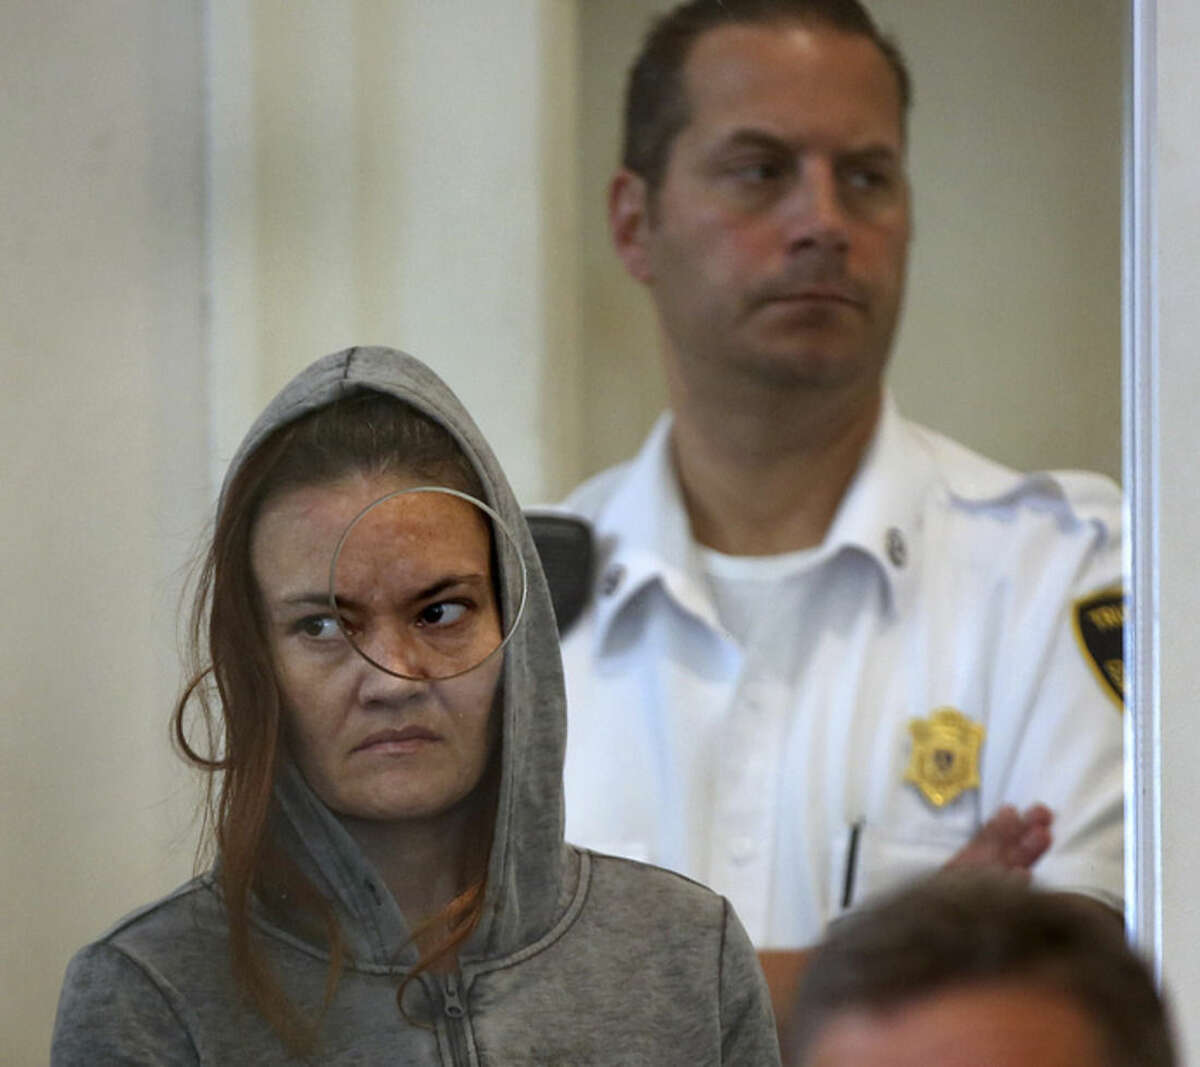 Pat Greenhouse/The Boston Globe via AP, Pool Rachelle Dee Bond is arraigned on charges of acting after the fact in helping to dispose of the body of her daughter, the girl dubbed Baby Doe, in Dorchester District Court, on Monday, Sept. 21, in Boston. Bella Bond, 2, was known as Baby Doe until she was identified almost three months after her remains washed up inside a trash bag on a Boston Harbor beach. The judge ordered Bond held on $1 million cash bail and Bond's boyfriend, Michael McCarthy, held without bail on murder charges.